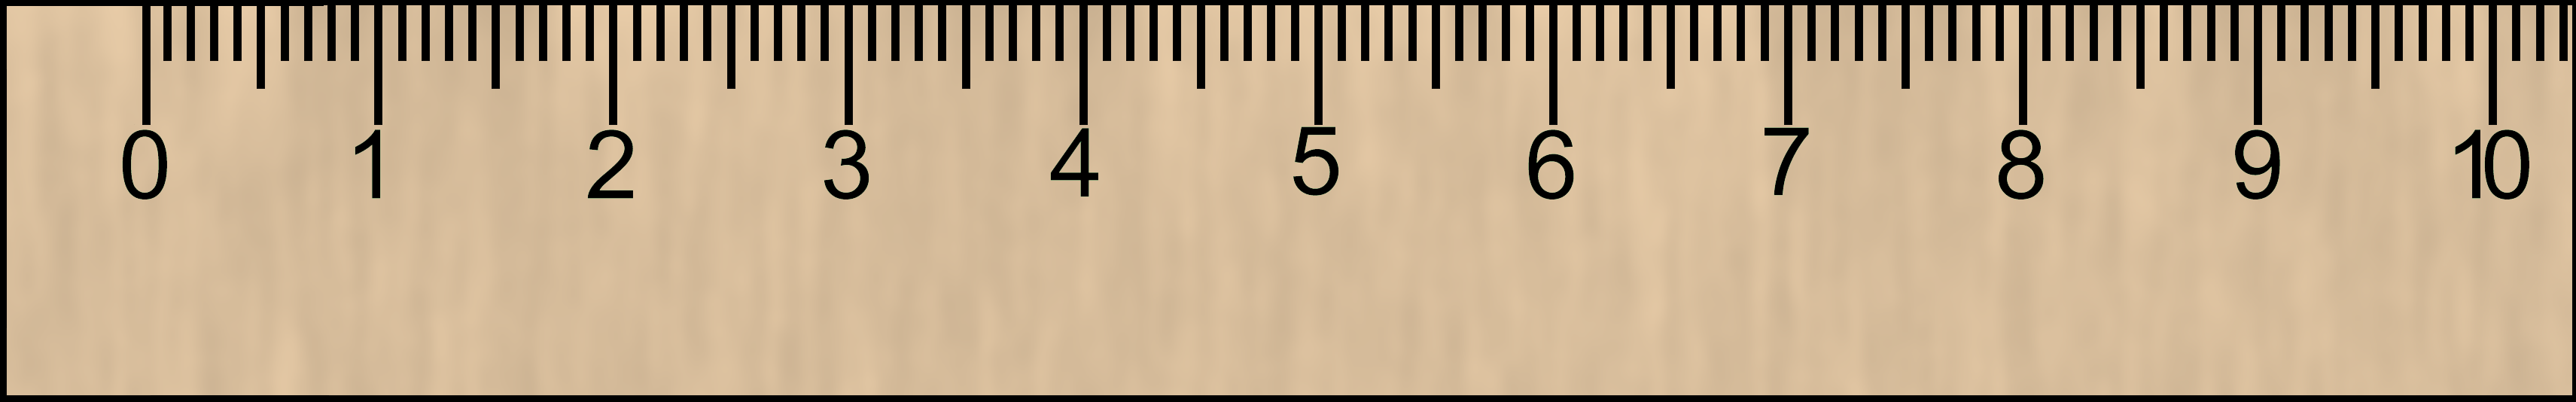 Metric Ruler Stock Photos  Download 2648 Images